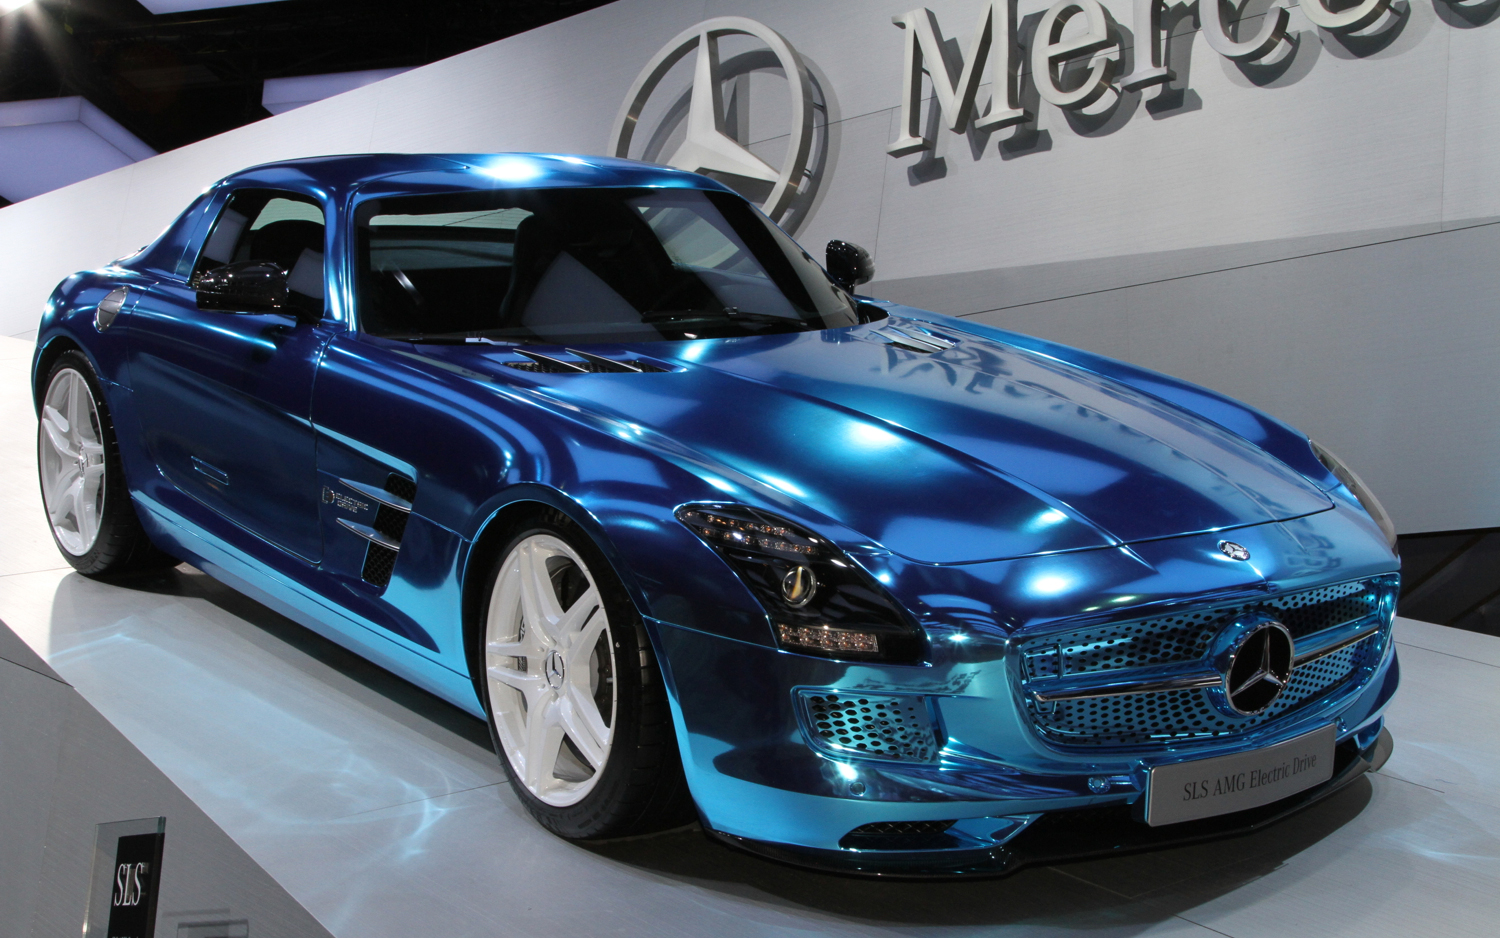 Mercedes benz sls amg electric drive new cars reviews for Cars of mercedes benz